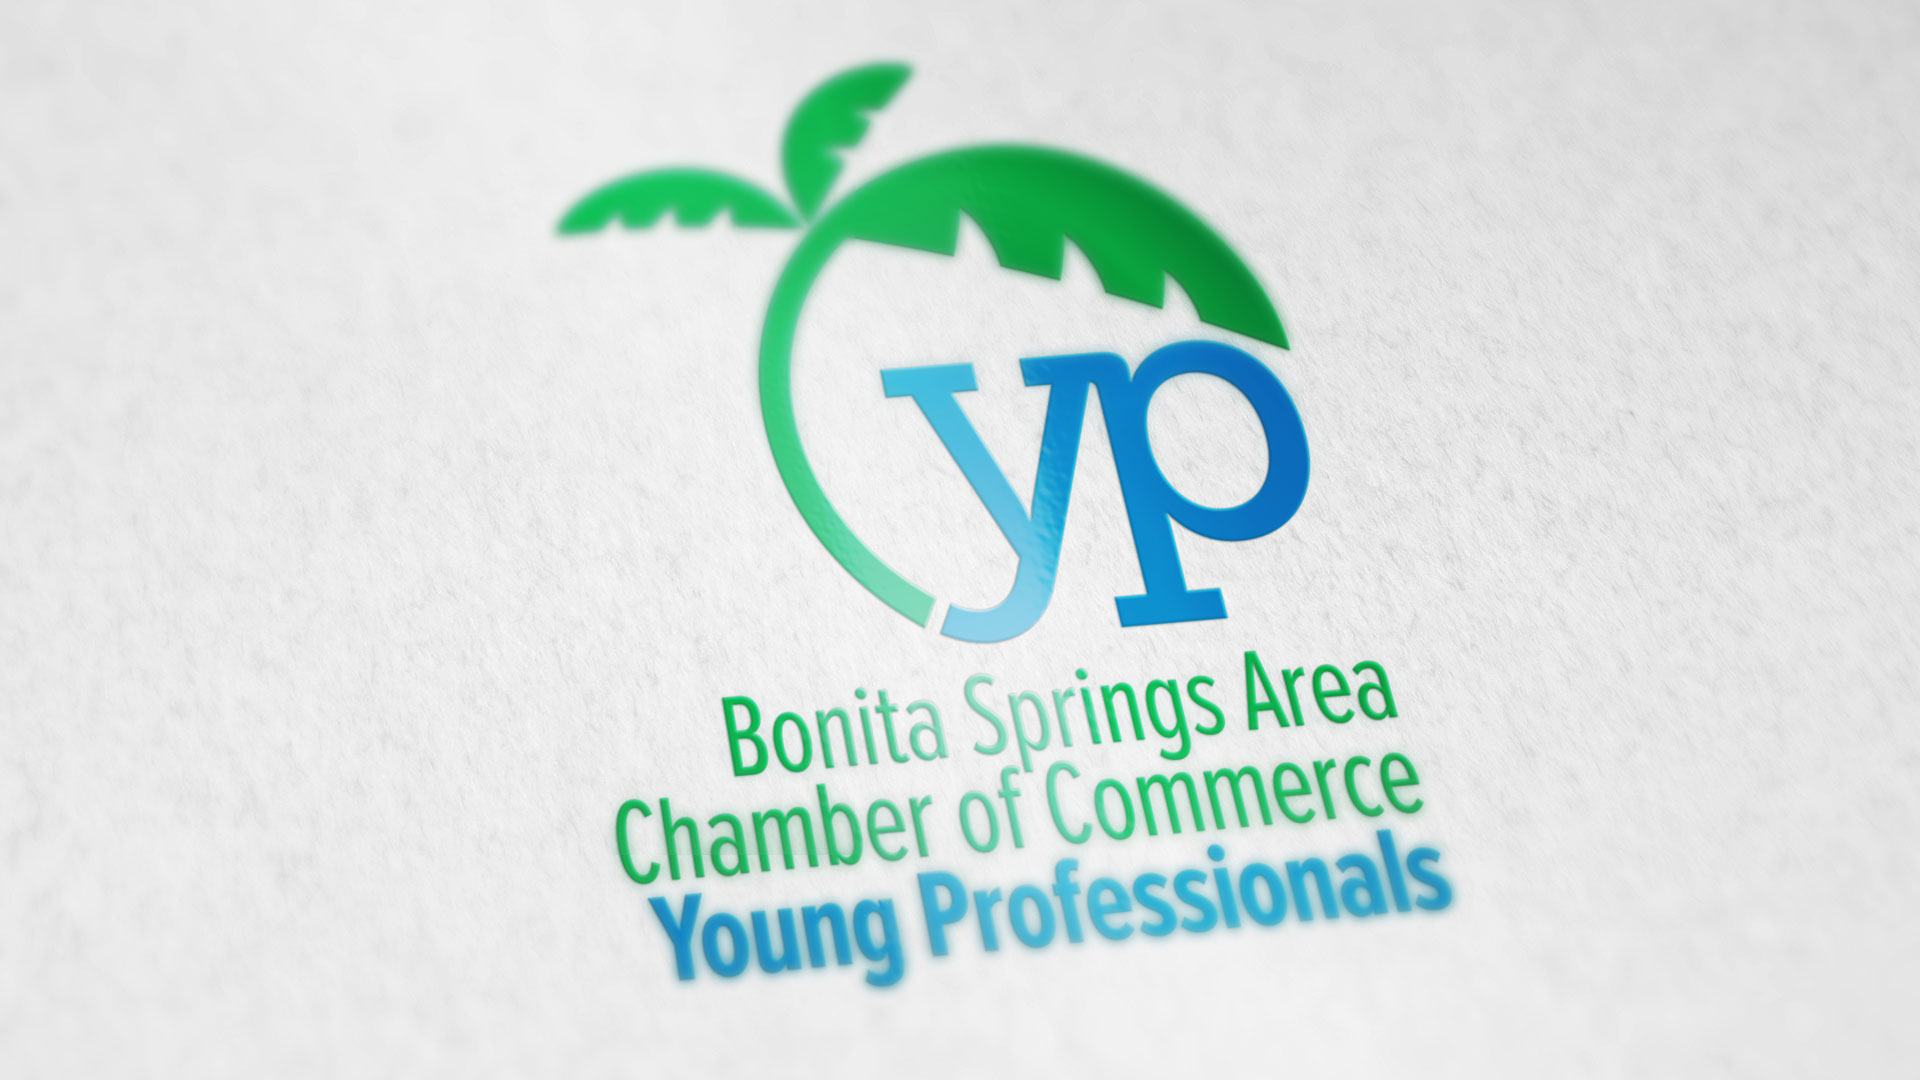 Image of Bonita Springs Area Chamber of Commerce Young Professionals logo on stationery